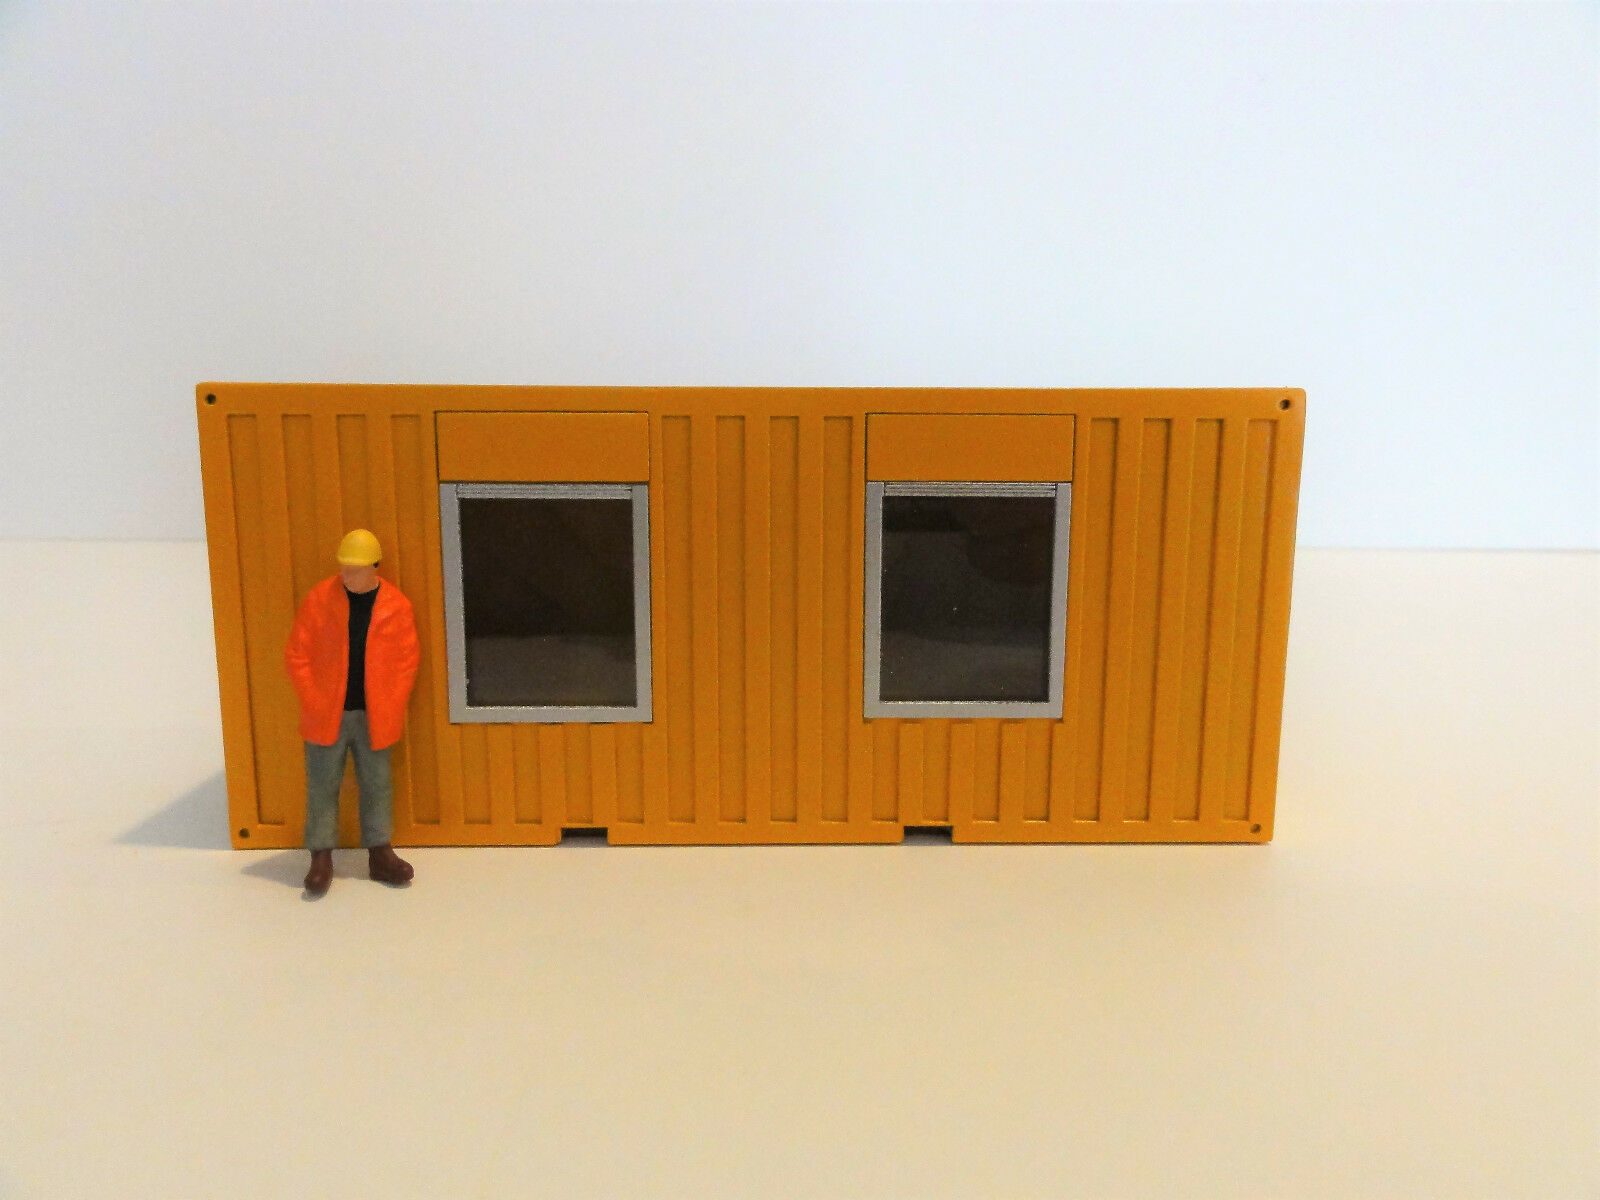 HIMOBO 20 FT LIVING OFFICE CONTAINER  YELLOW  1 50  NEW  NICE ACCESSORY